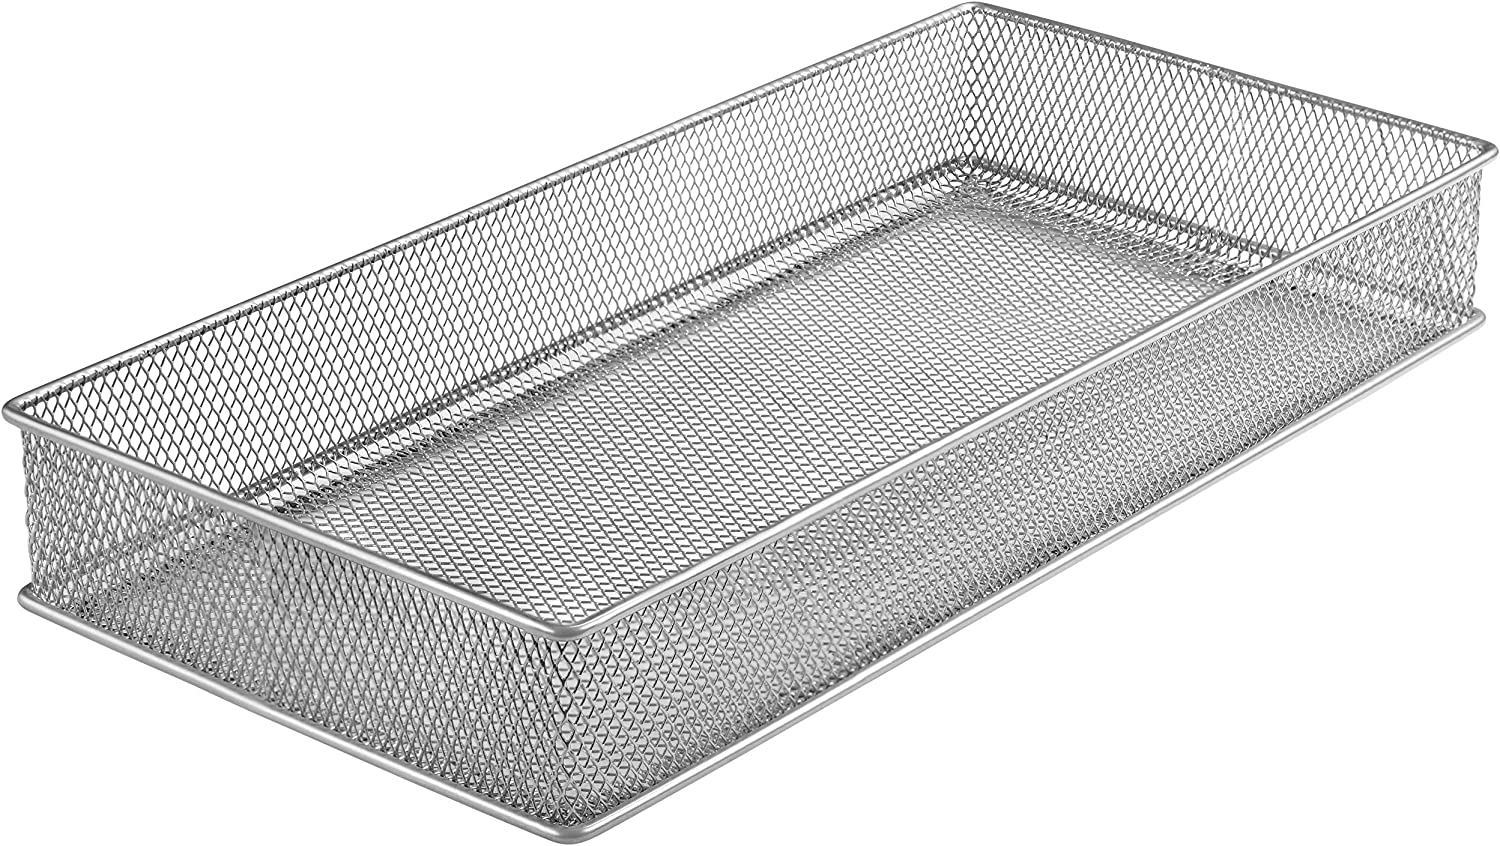 YBM HOME Silver Mesh Drawer Cabinet and or Shelf Organizer Bins, School Supply Holder Office Desktop Organizer Basket 1591s (1, 6x12x2 Inch)